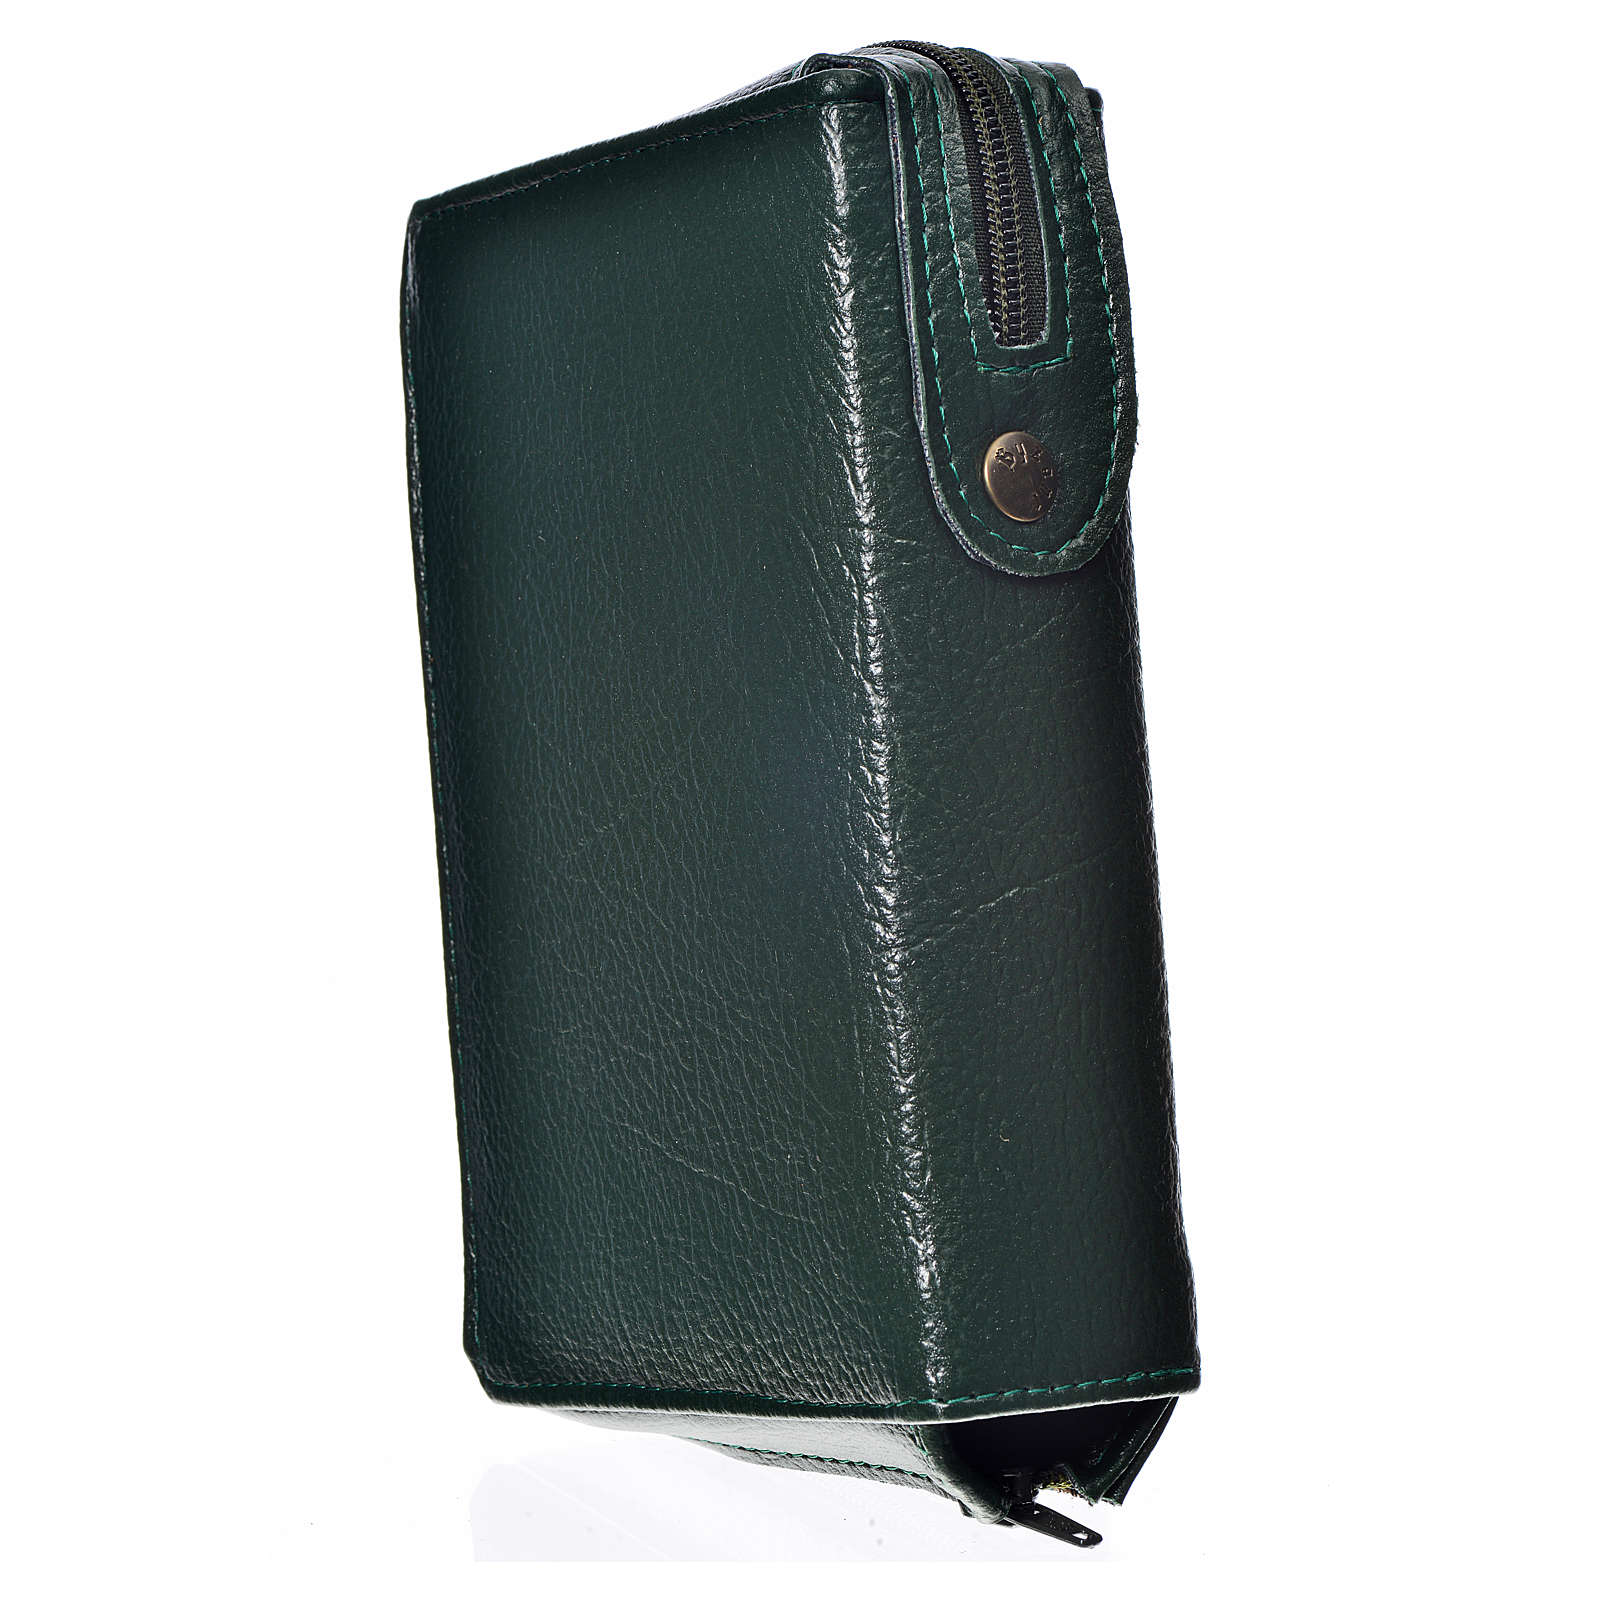 Daily prayer cover green bonded leather, Our Lady of the Tenderness 4